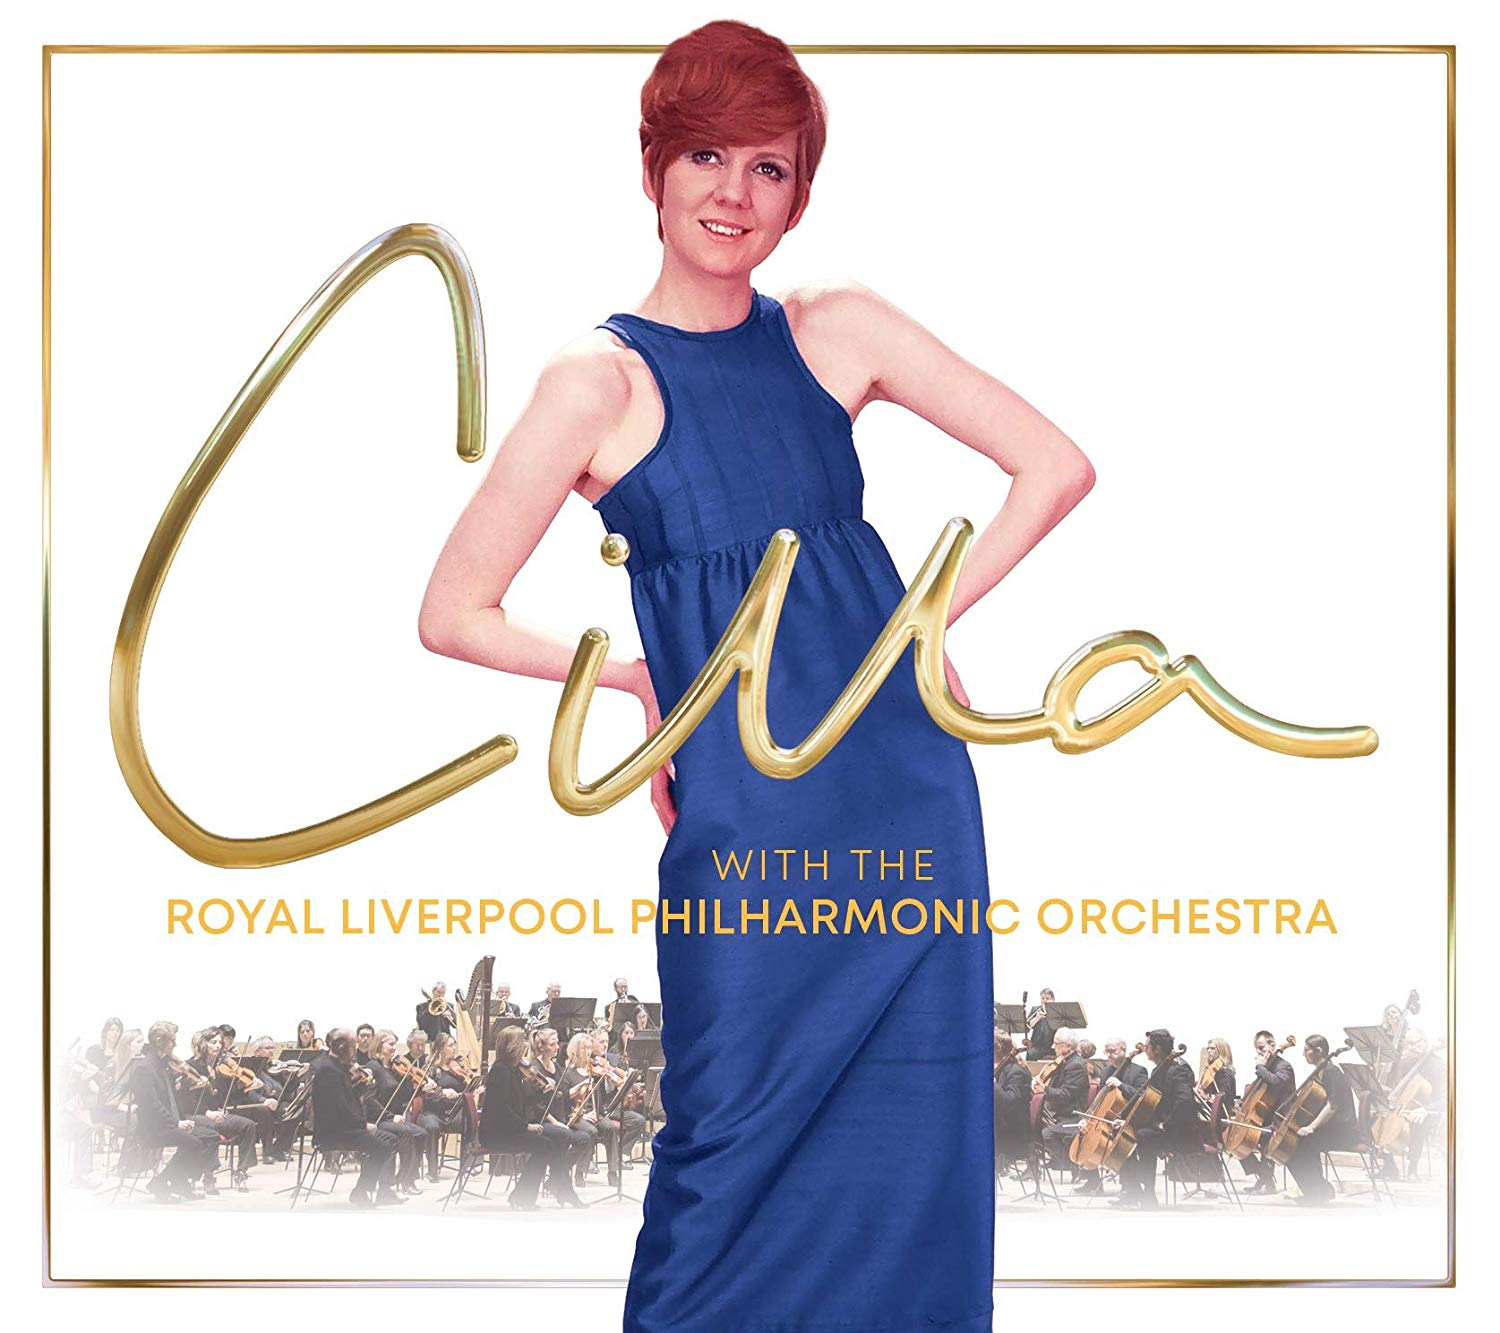 Cilla with the Royal Liverpool Philharmonic Orchestra album